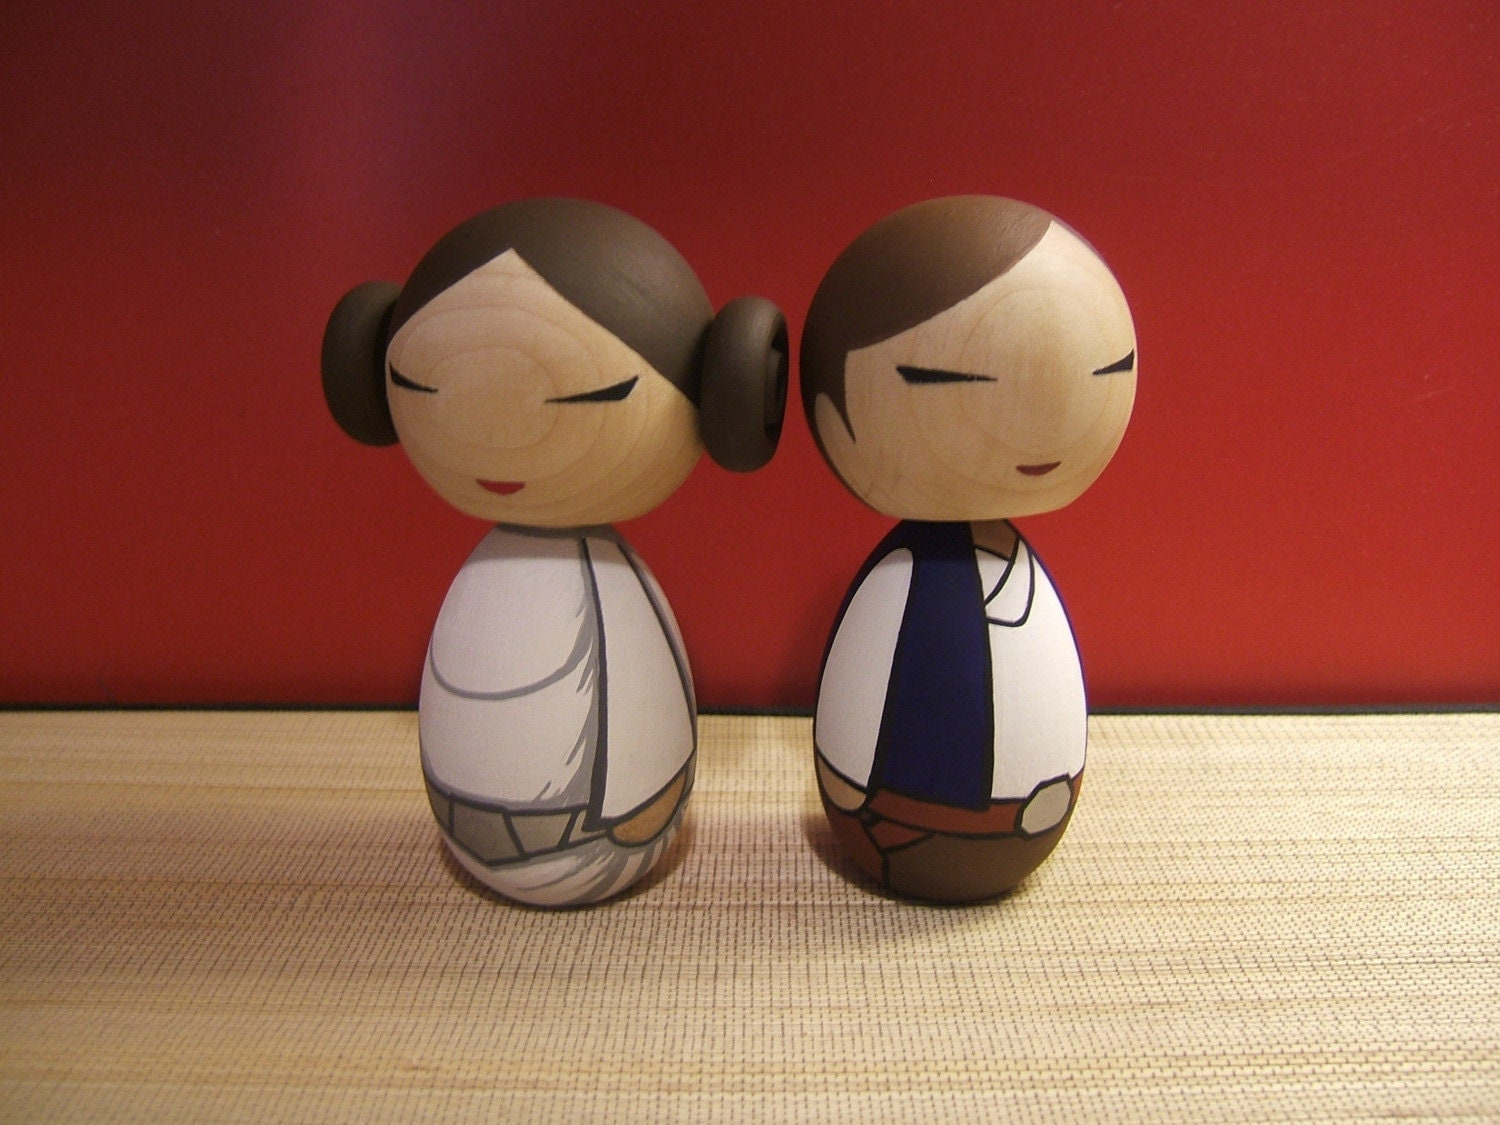 Kokeshi dolls. Han Solo and Princess Leia set.